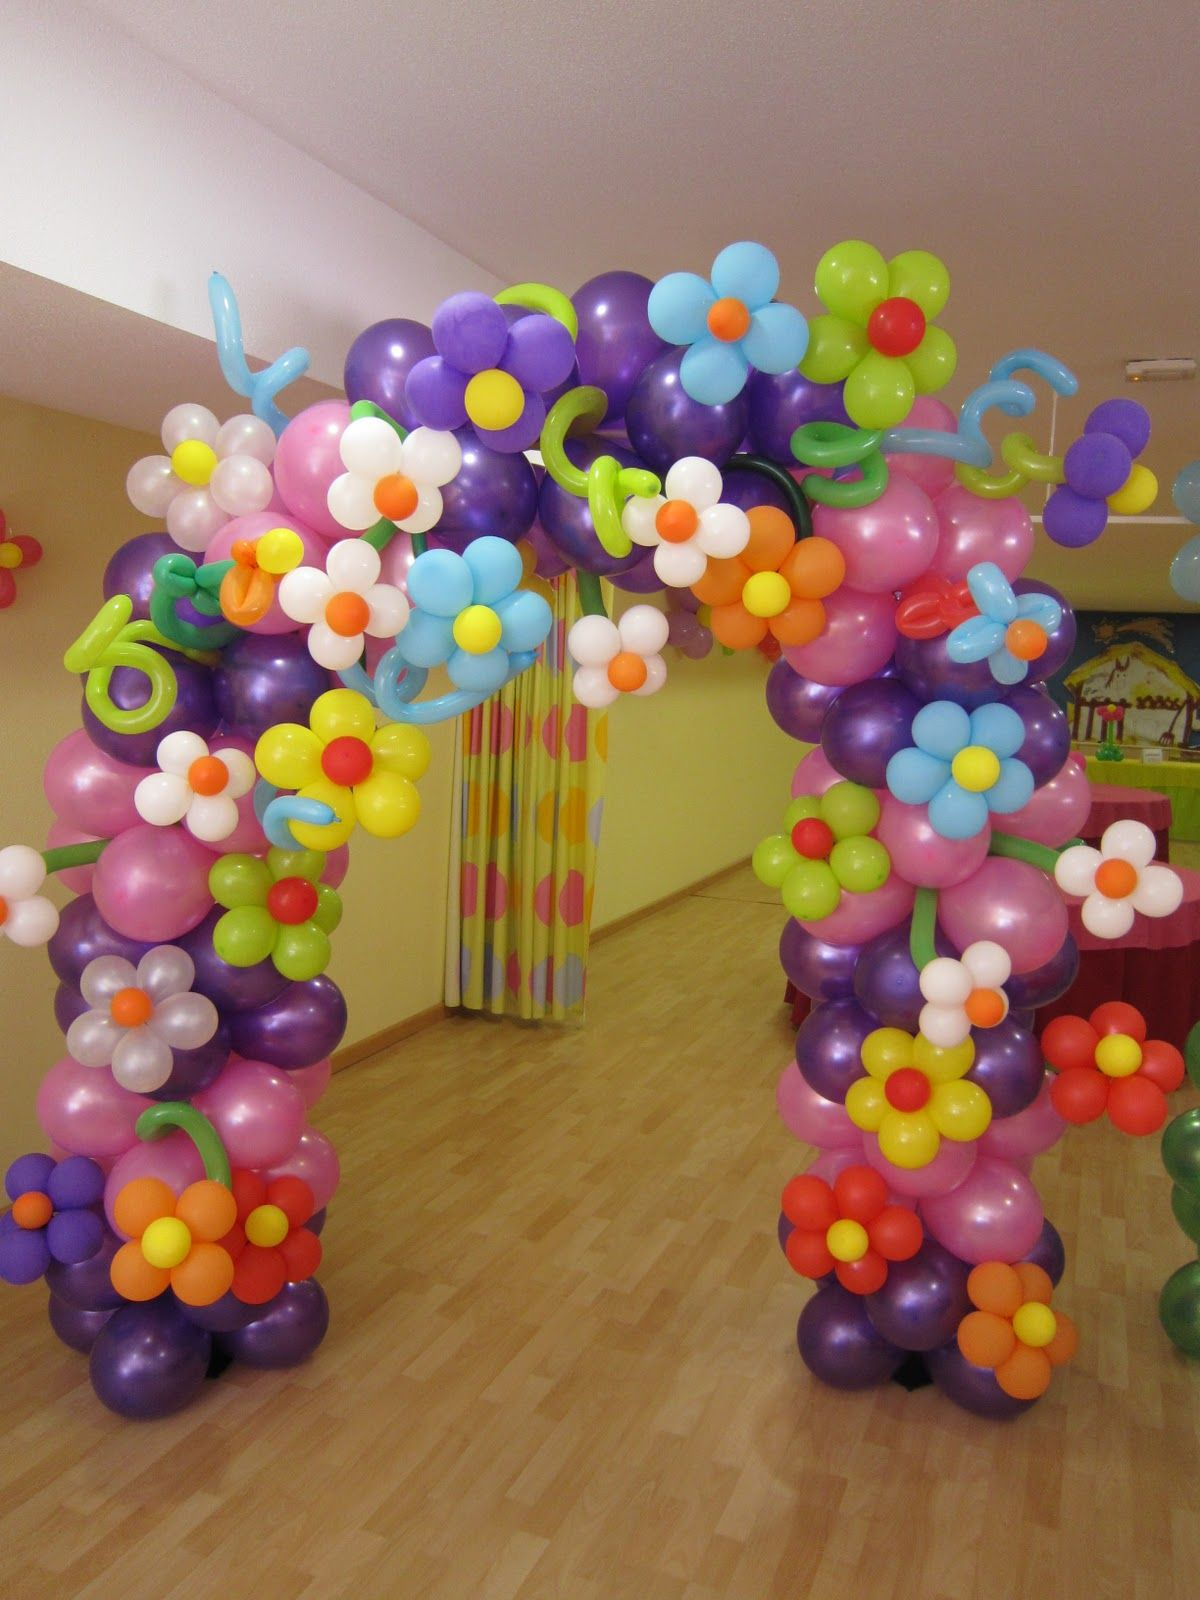 Image result for Troll balloon animals | Balloons | Pinterest ...